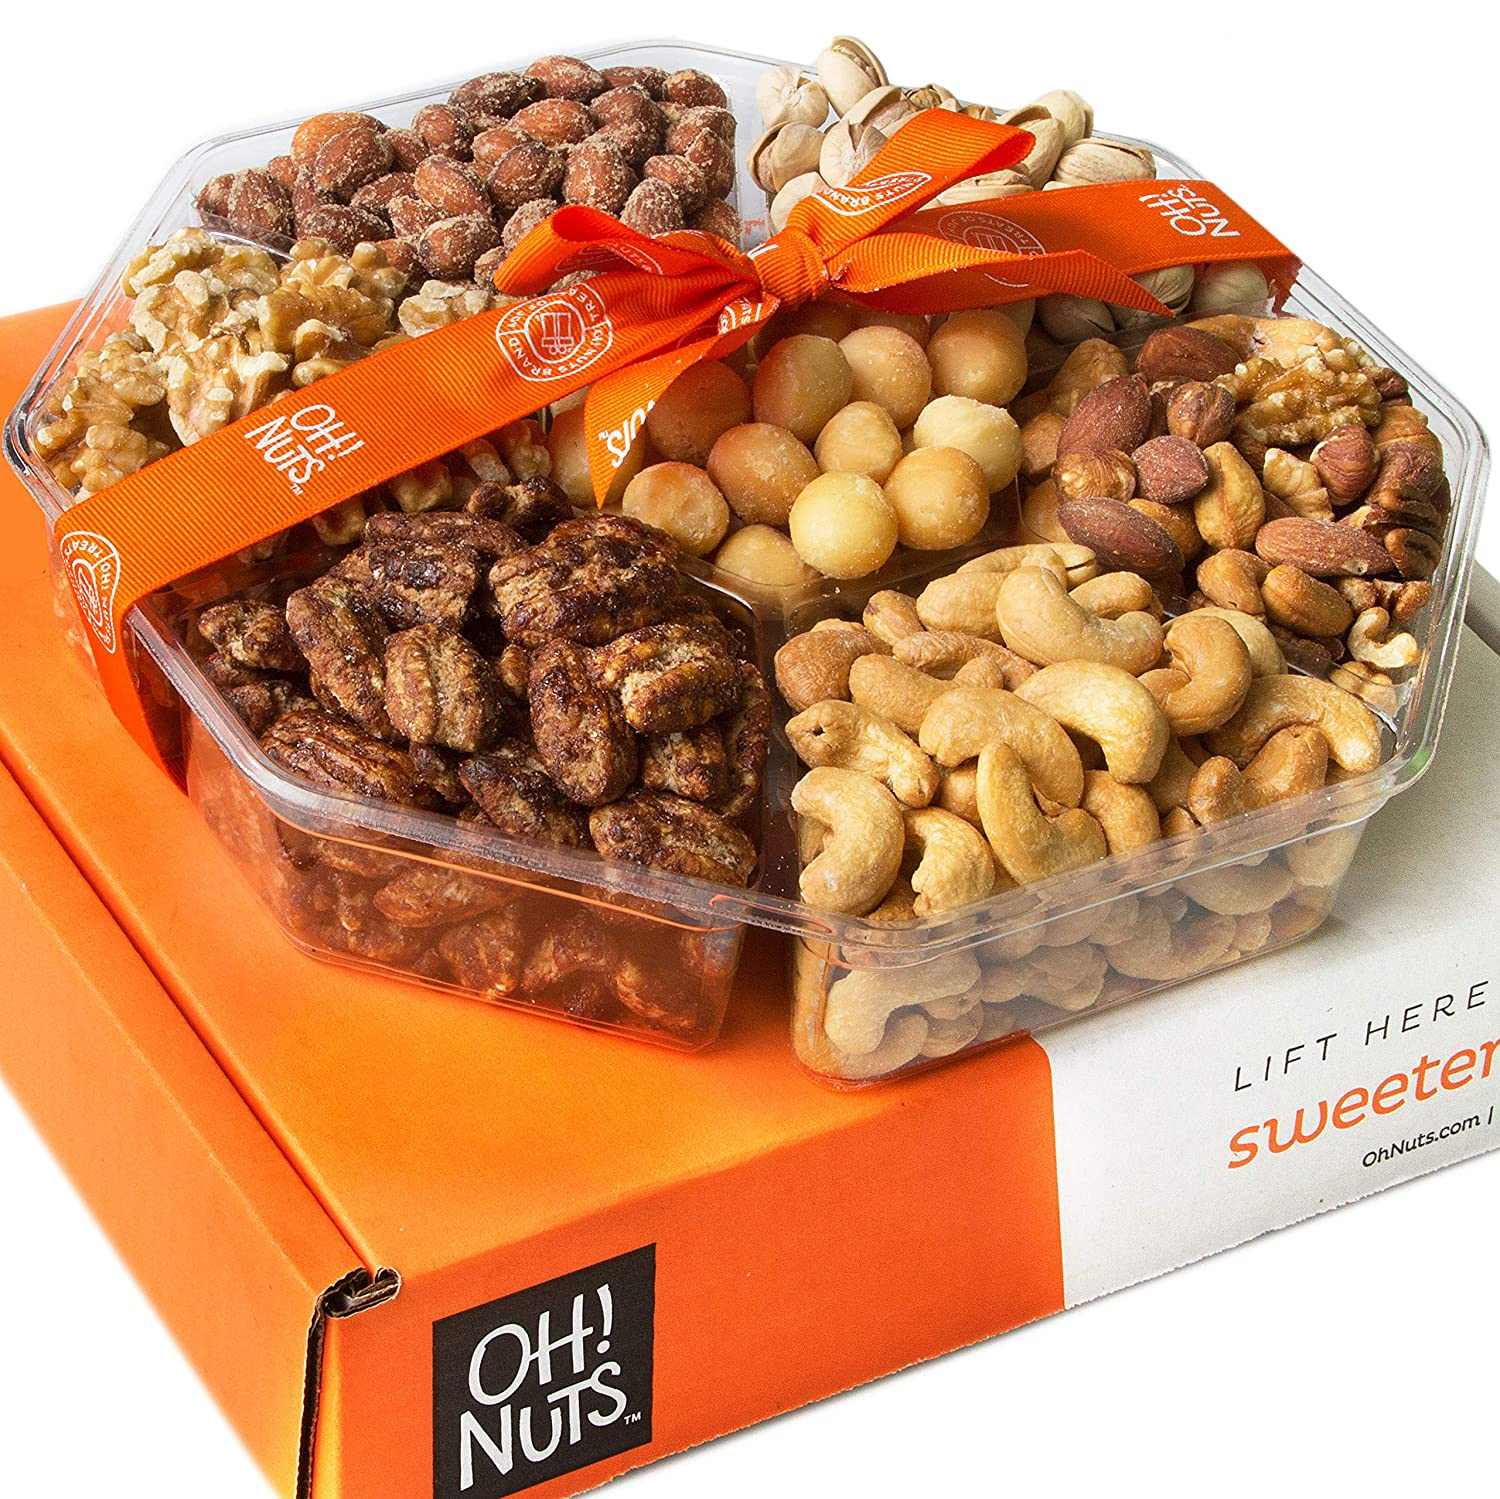 Oh! Nuts Christmas, Gourmet Nut Gift Baskets, Jumbo 2LB 7 Variety Holiday Freshly Roasted Tray, Thanksgiving Mothers & Father's Day Gifts, Prime Basket Idea for Men & Woman Birthday, Sympathy